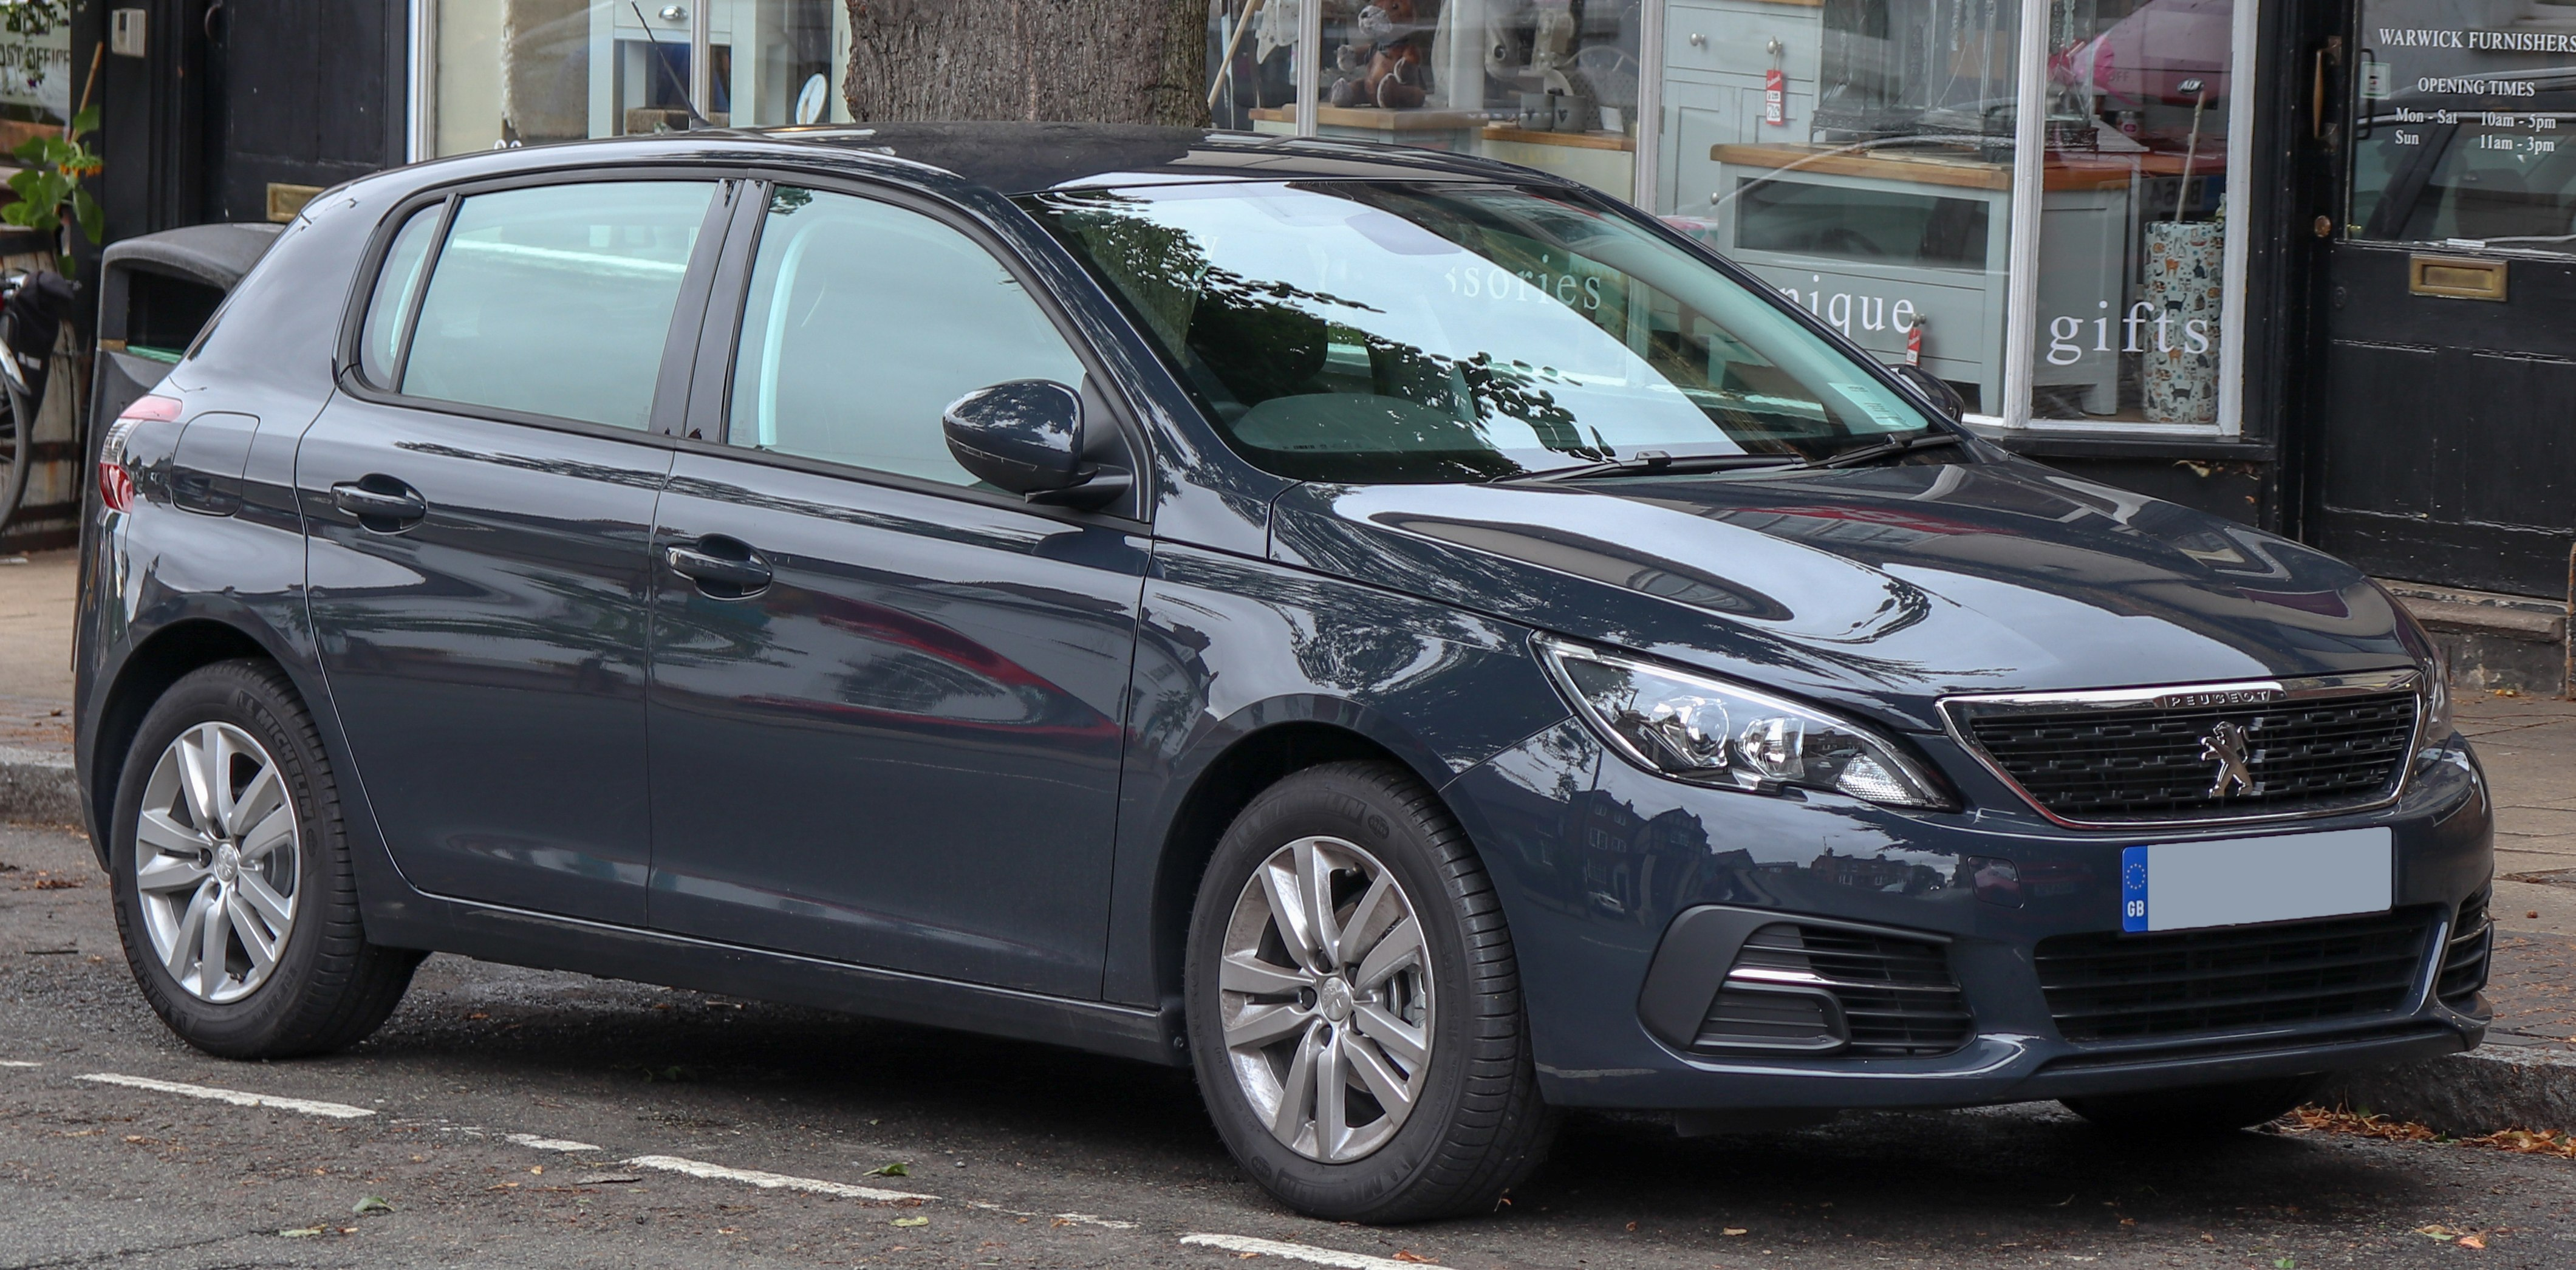 Peugeot 308 CC - The complete information and online sale with free